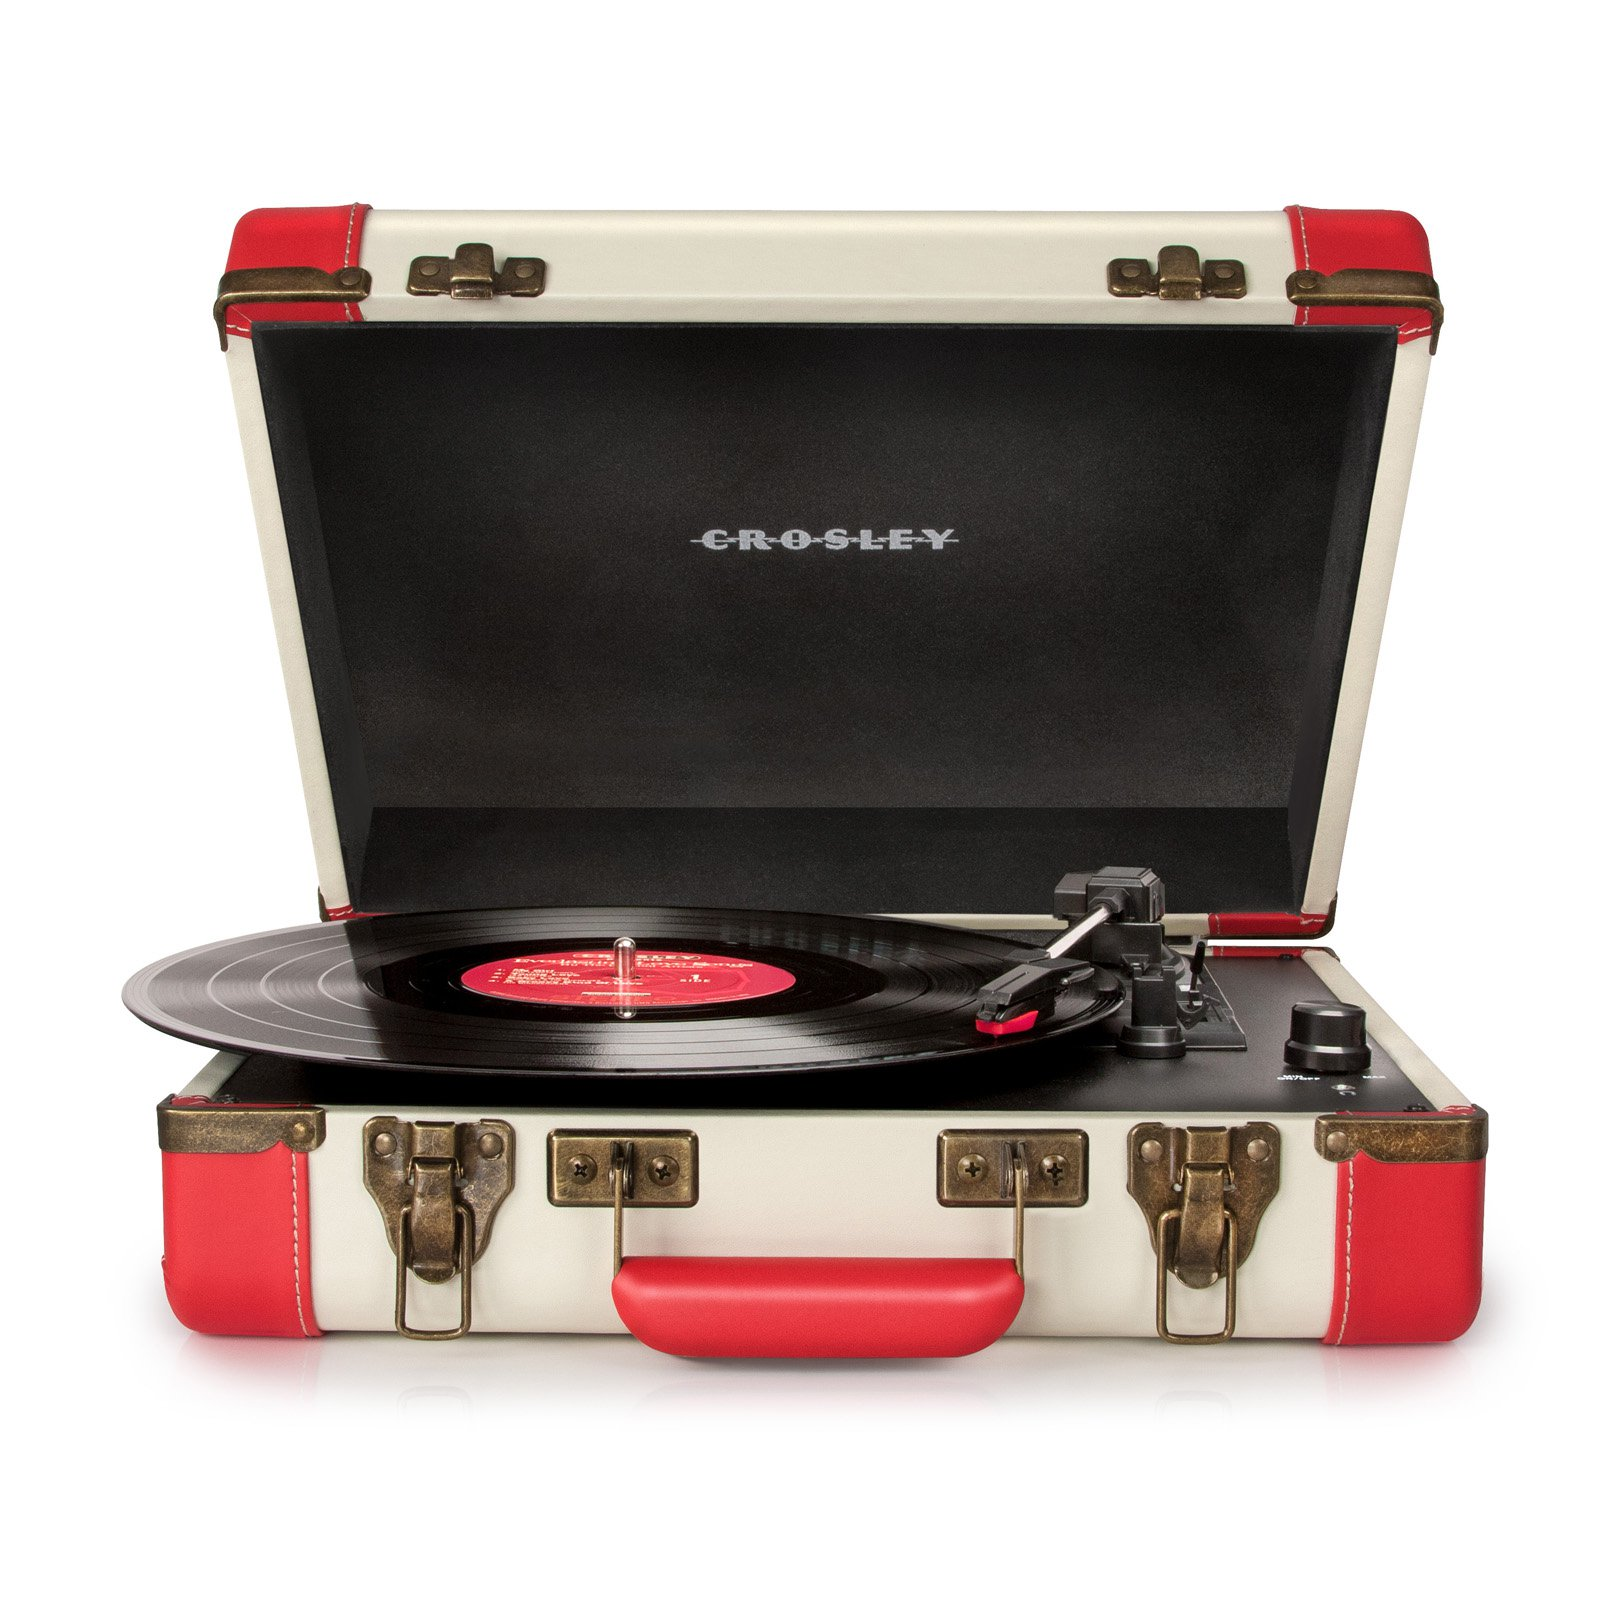 Crosley Executive Portable Turntable